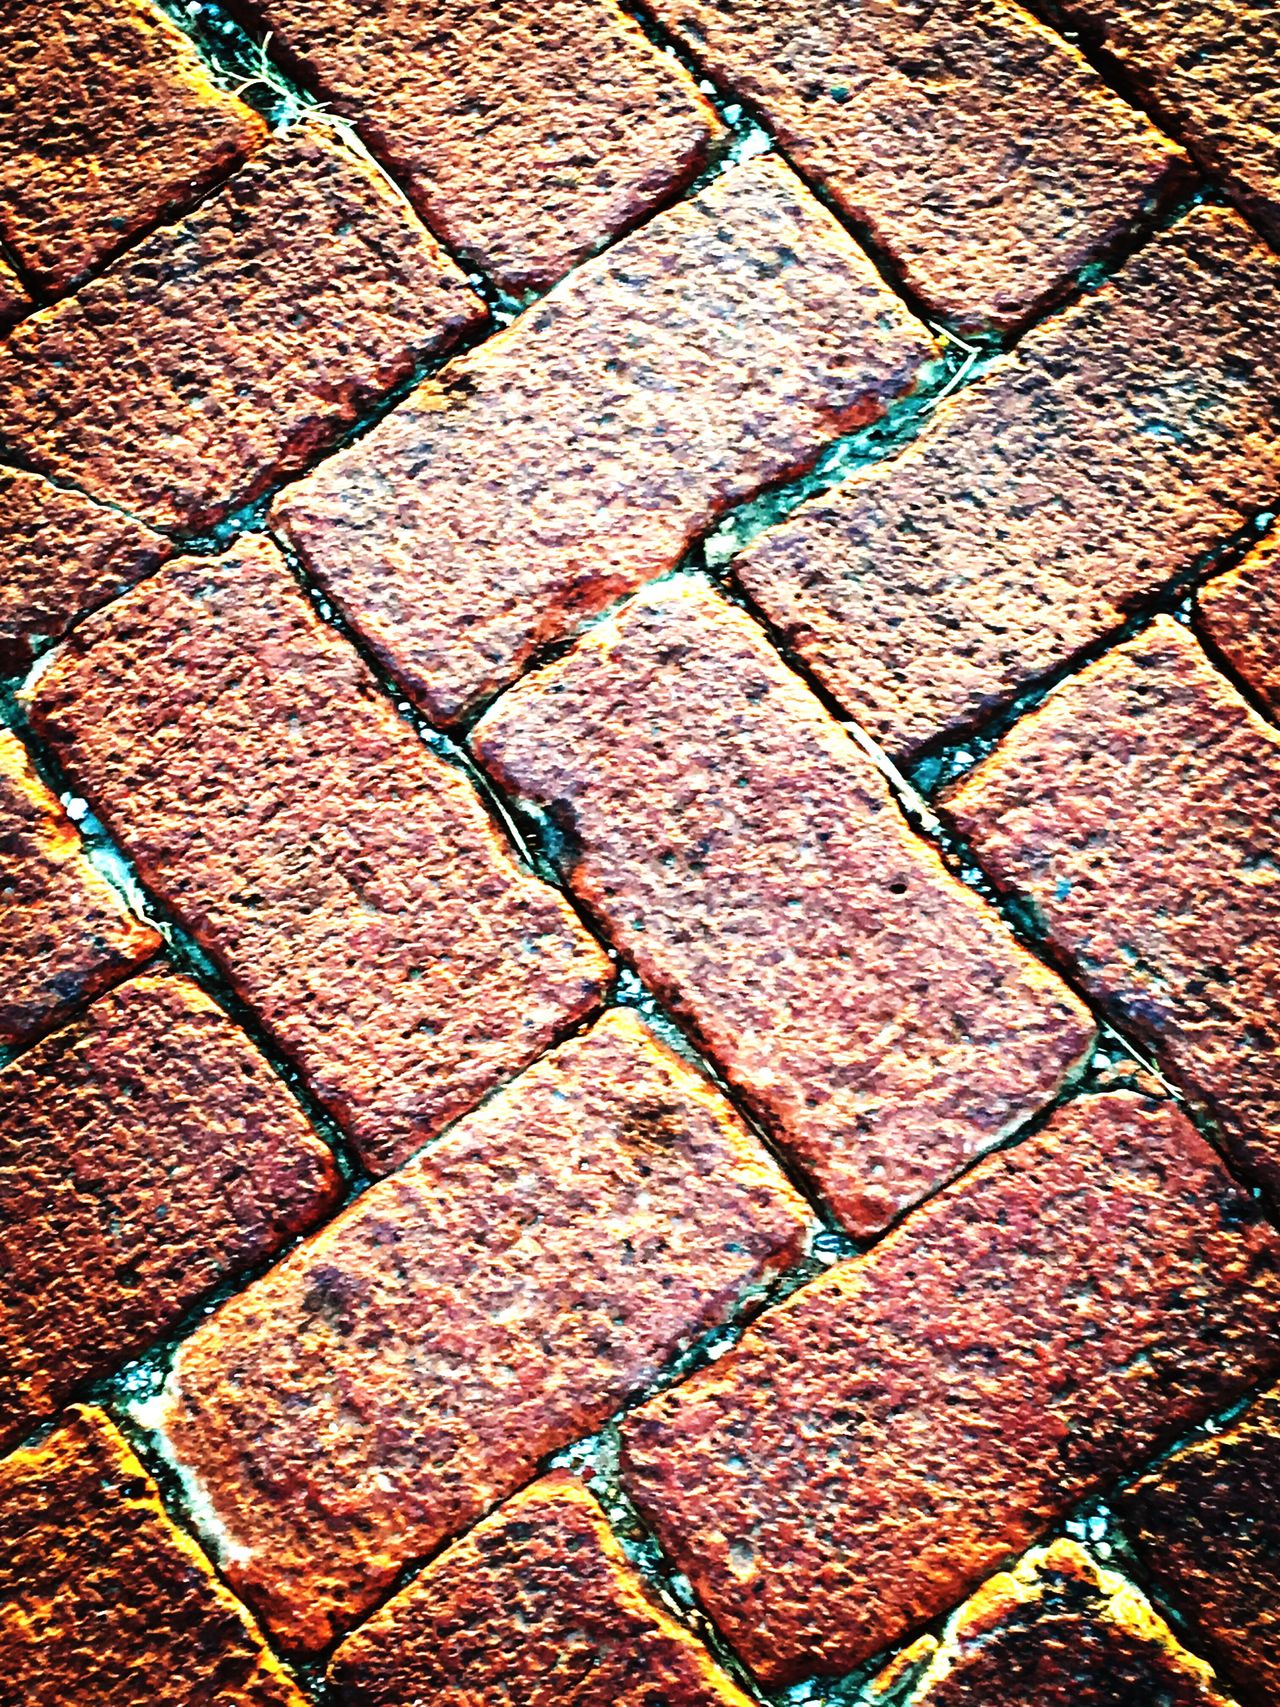 Maximum Closeness small town old red brick roads Backgrounds Full Frame Pattern Textured  No People Day Outdoors Close-up Brick Redbrick Road Street Streetphotography Old Landscape Adapted To The City The City Light